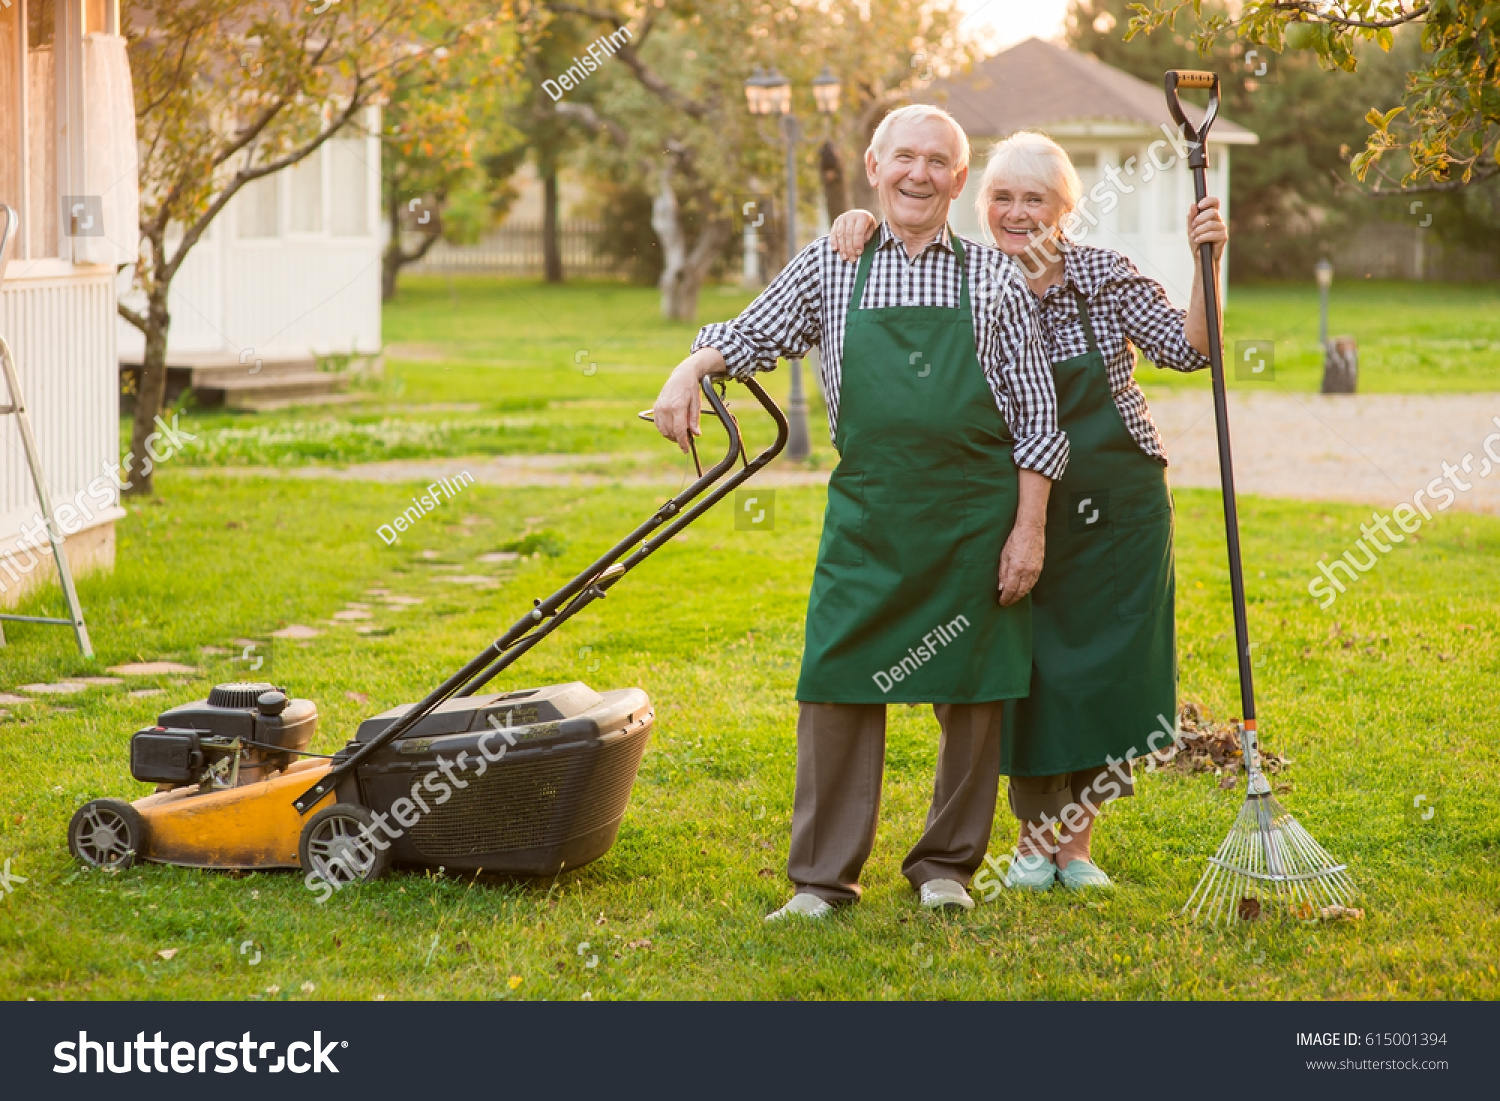 Smiling couple senior gardeners happy people stock photo for Garden maintenance jobs